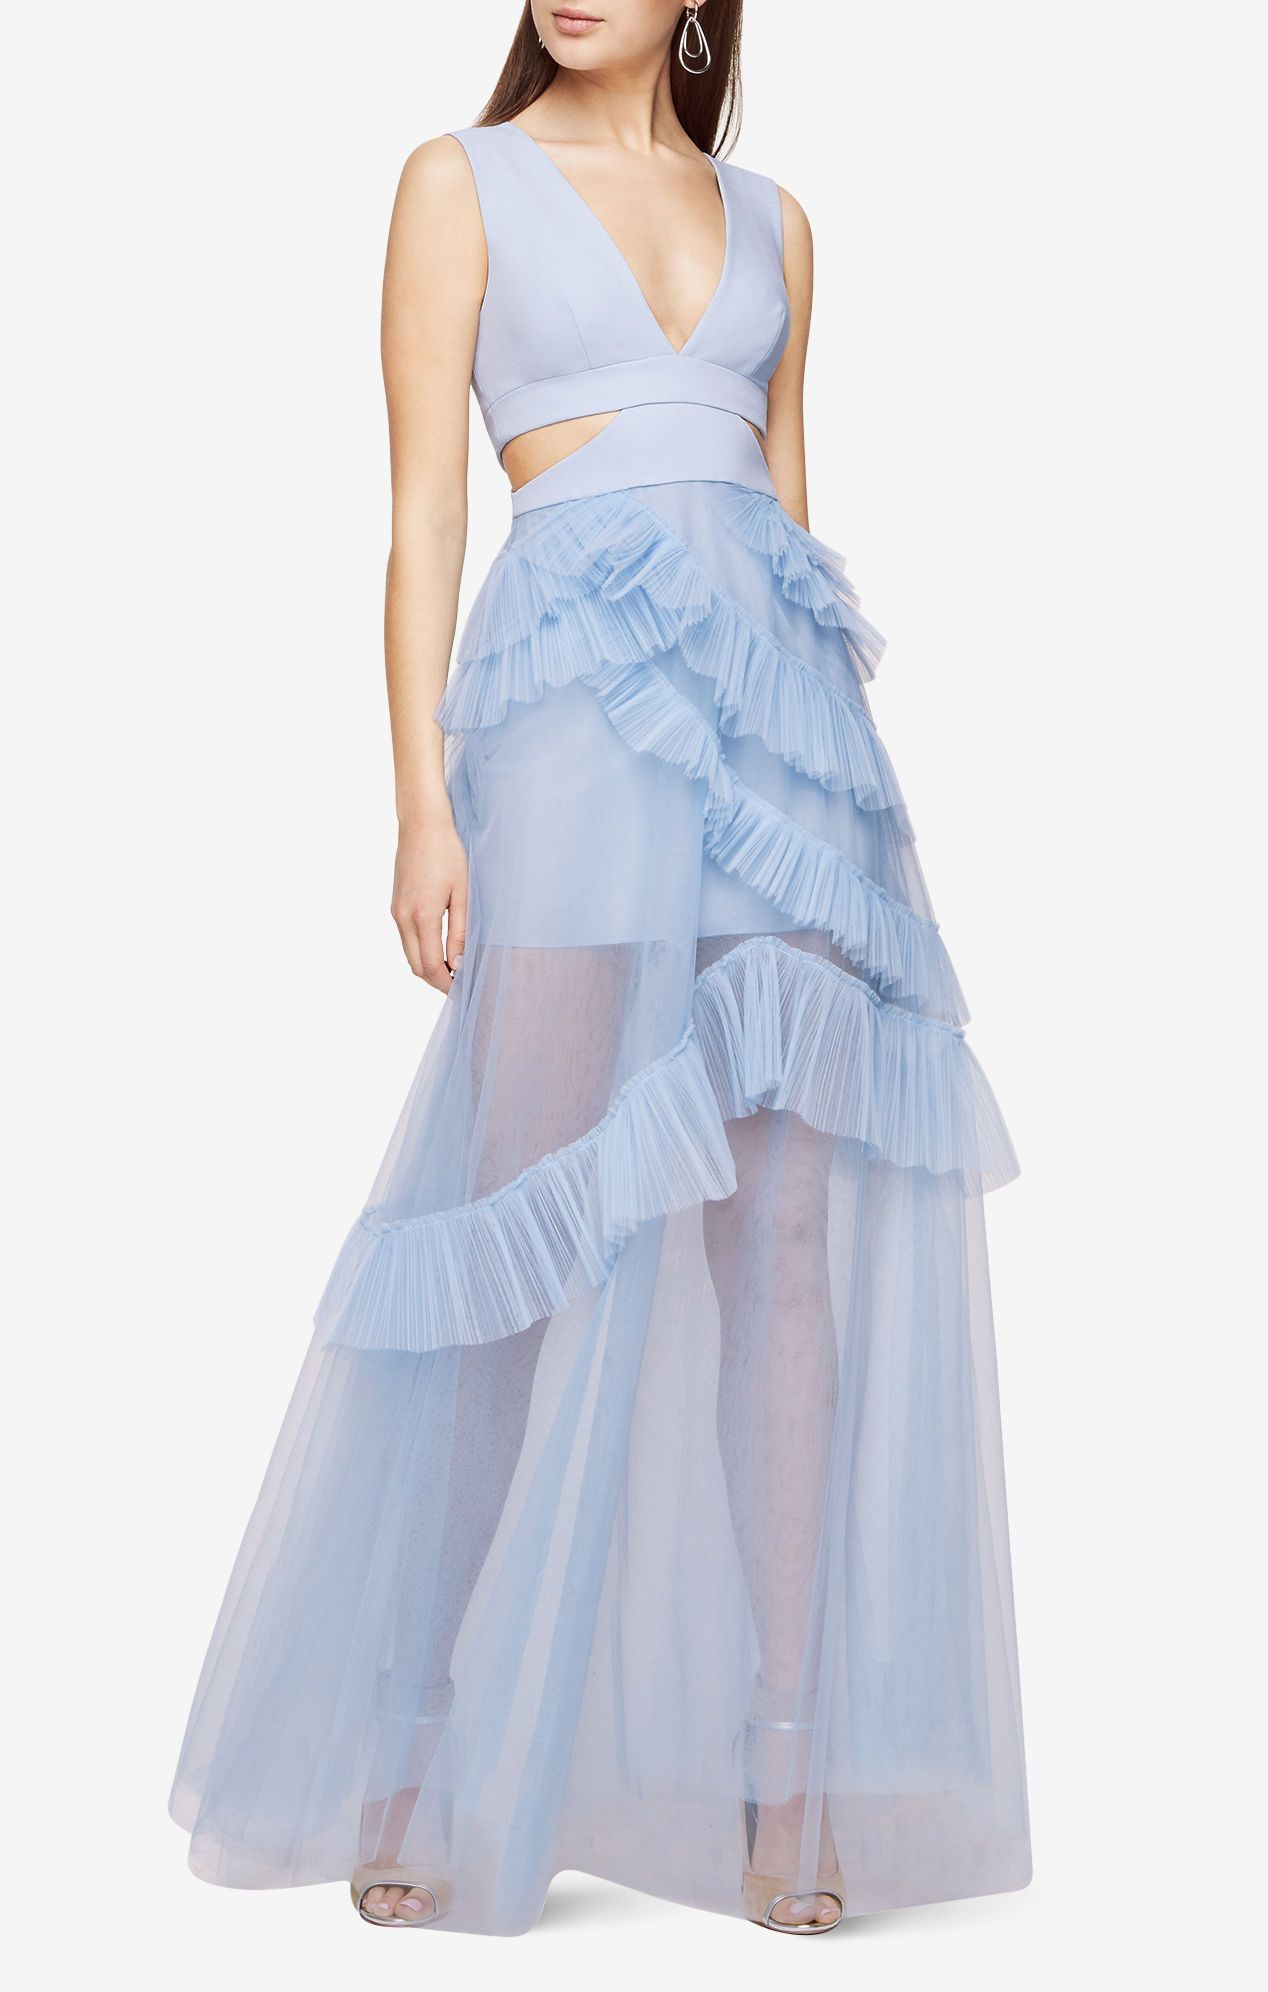 Lo lo lord and taylor party dresses - Elegant Evening Gowns Cocktail Dresses Bcbg Com